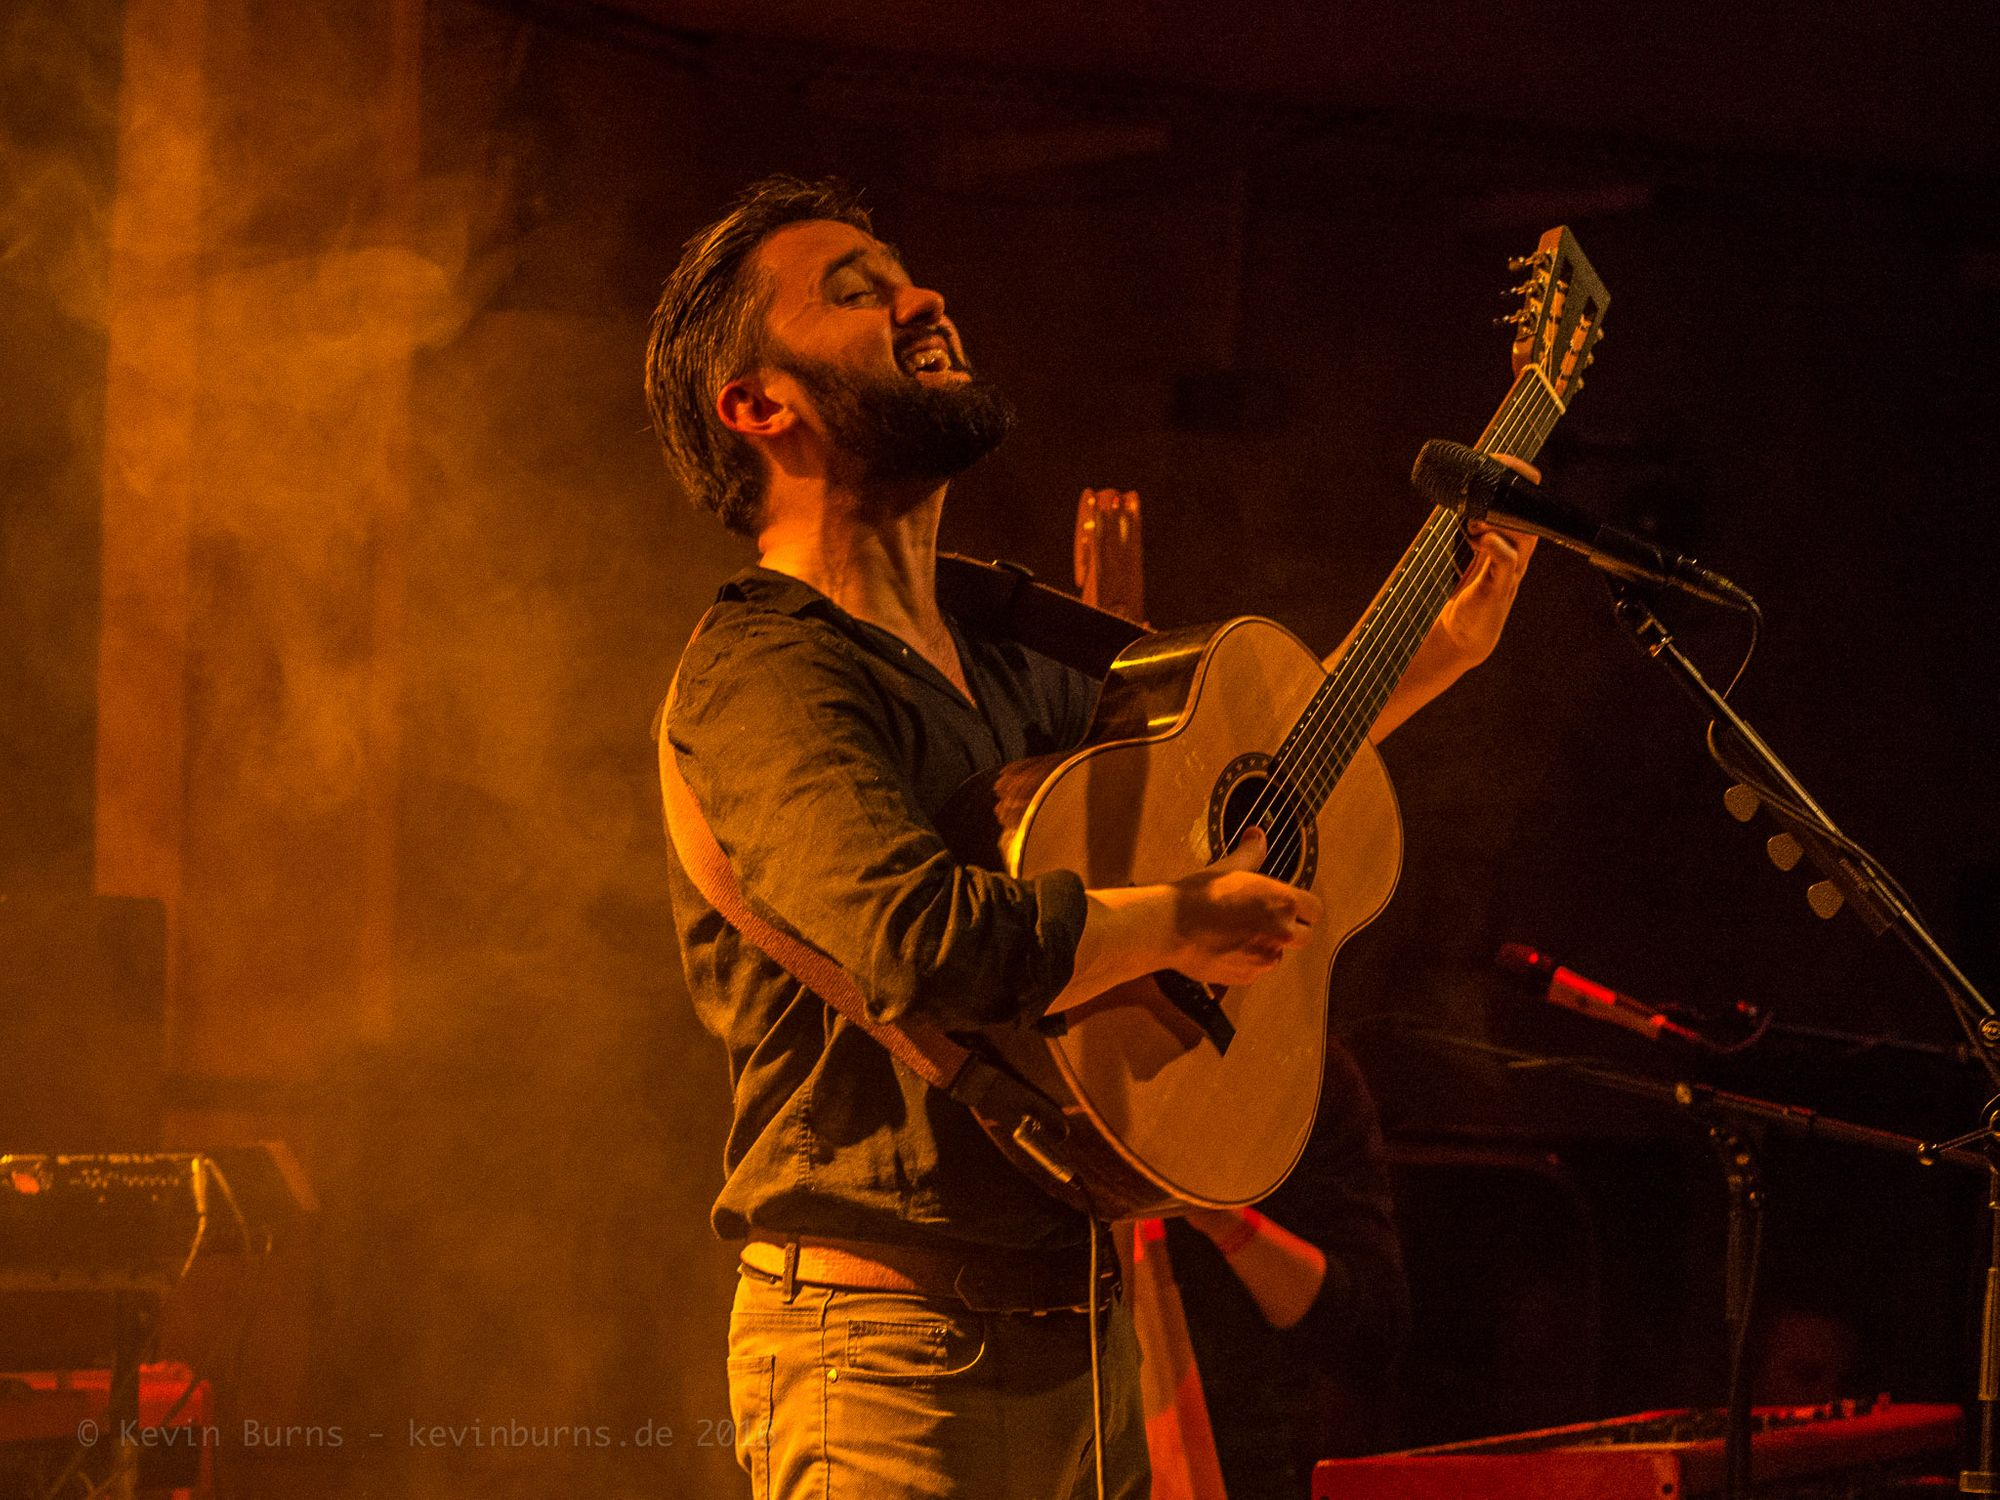 Villagers gig review and interview